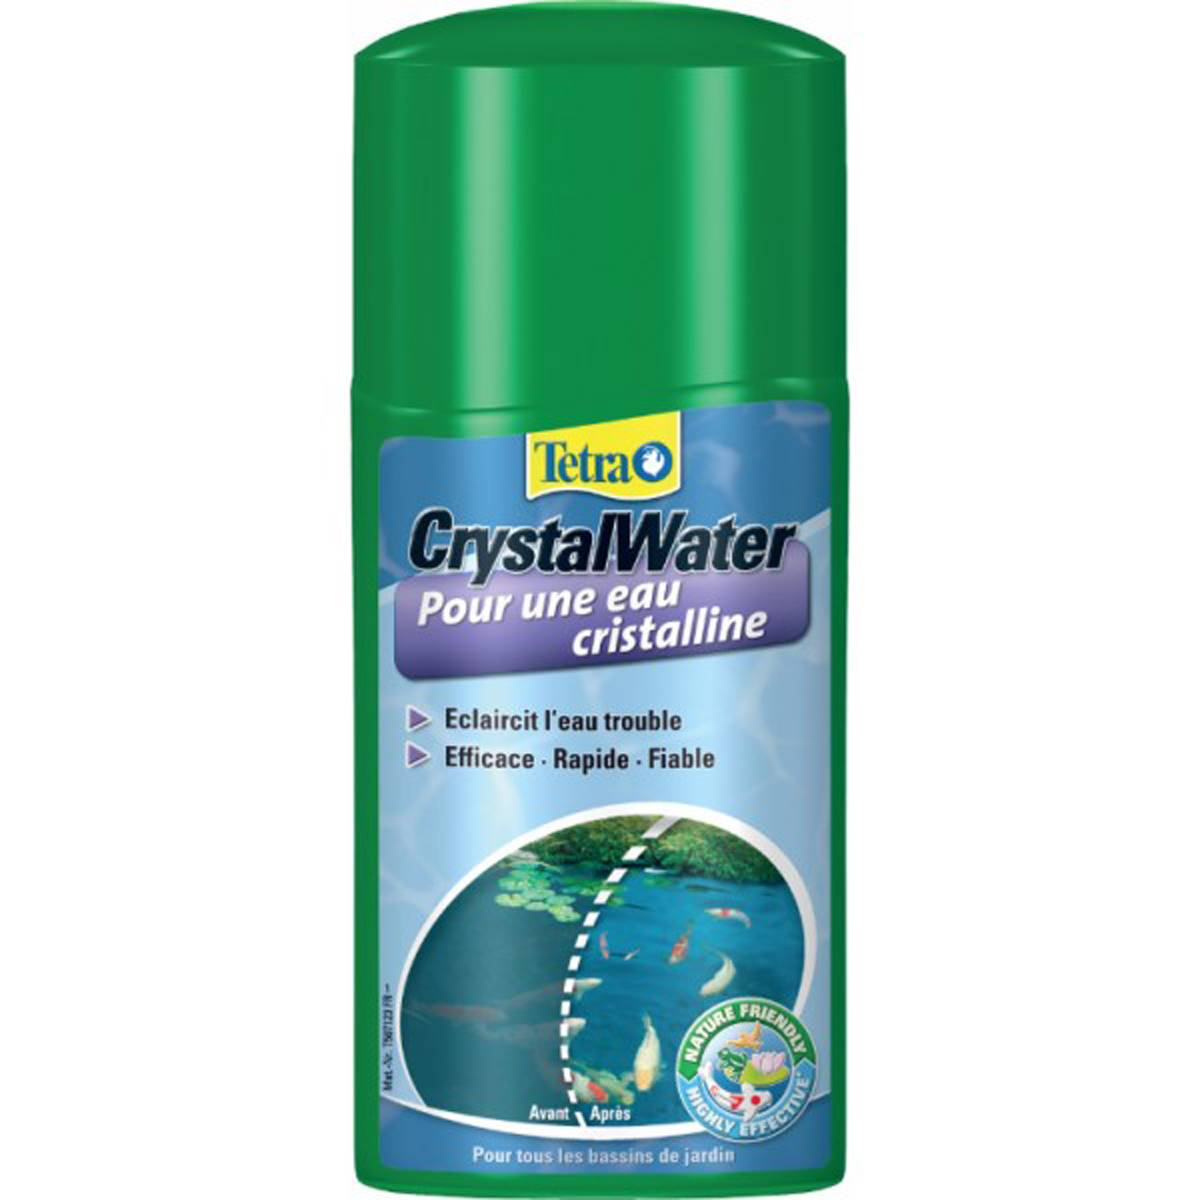 TETRA - Pond Crystalwalter - 250ml